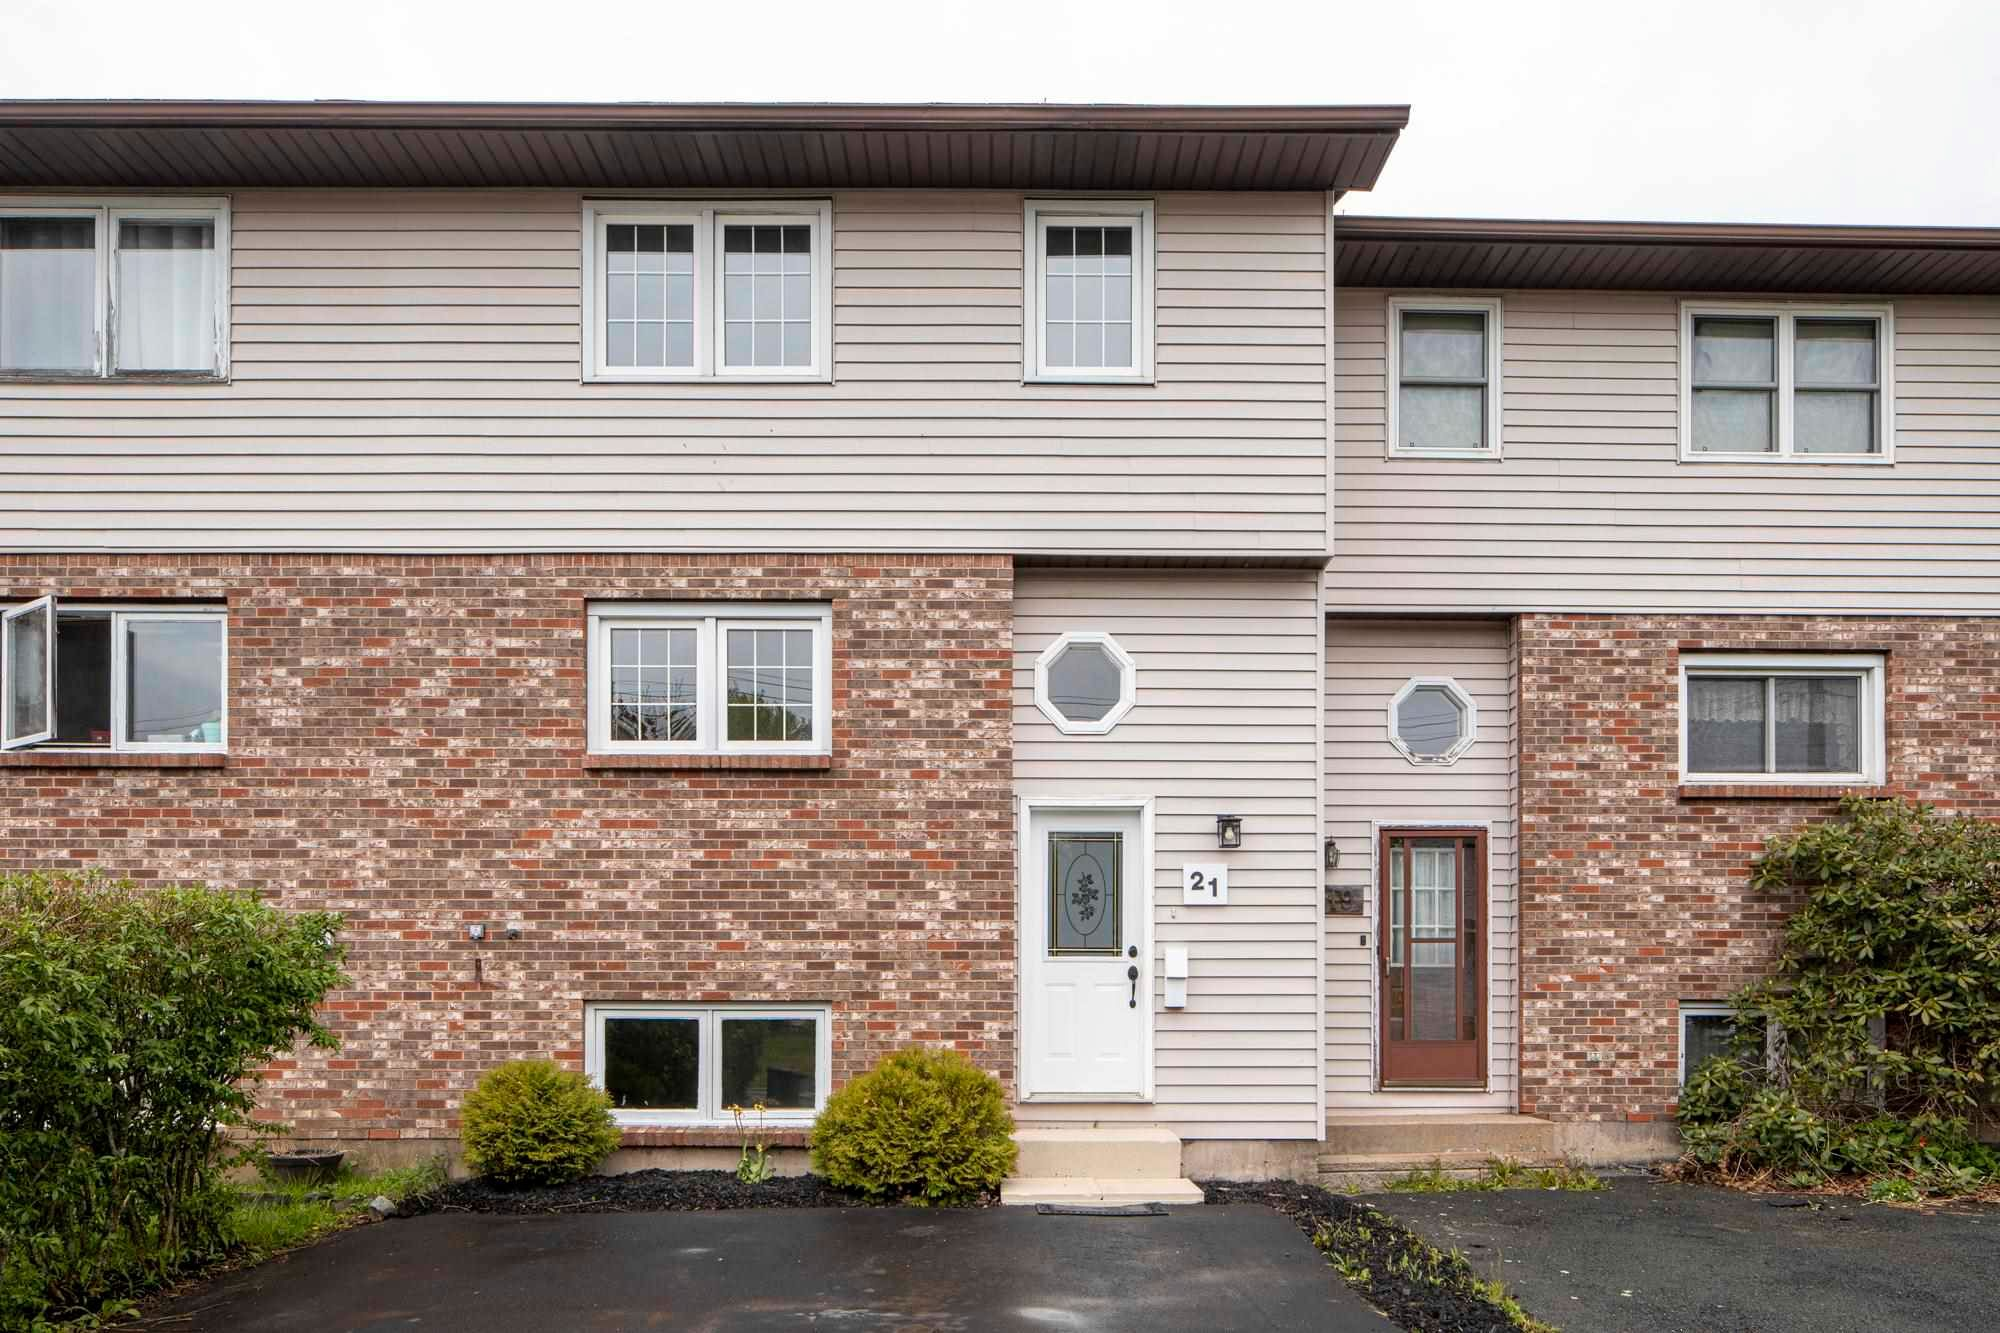 Main Photo: 21 Chameau Crescent in Dartmouth: 15-Forest Hills Residential for sale (Halifax-Dartmouth)  : MLS®# 202114002